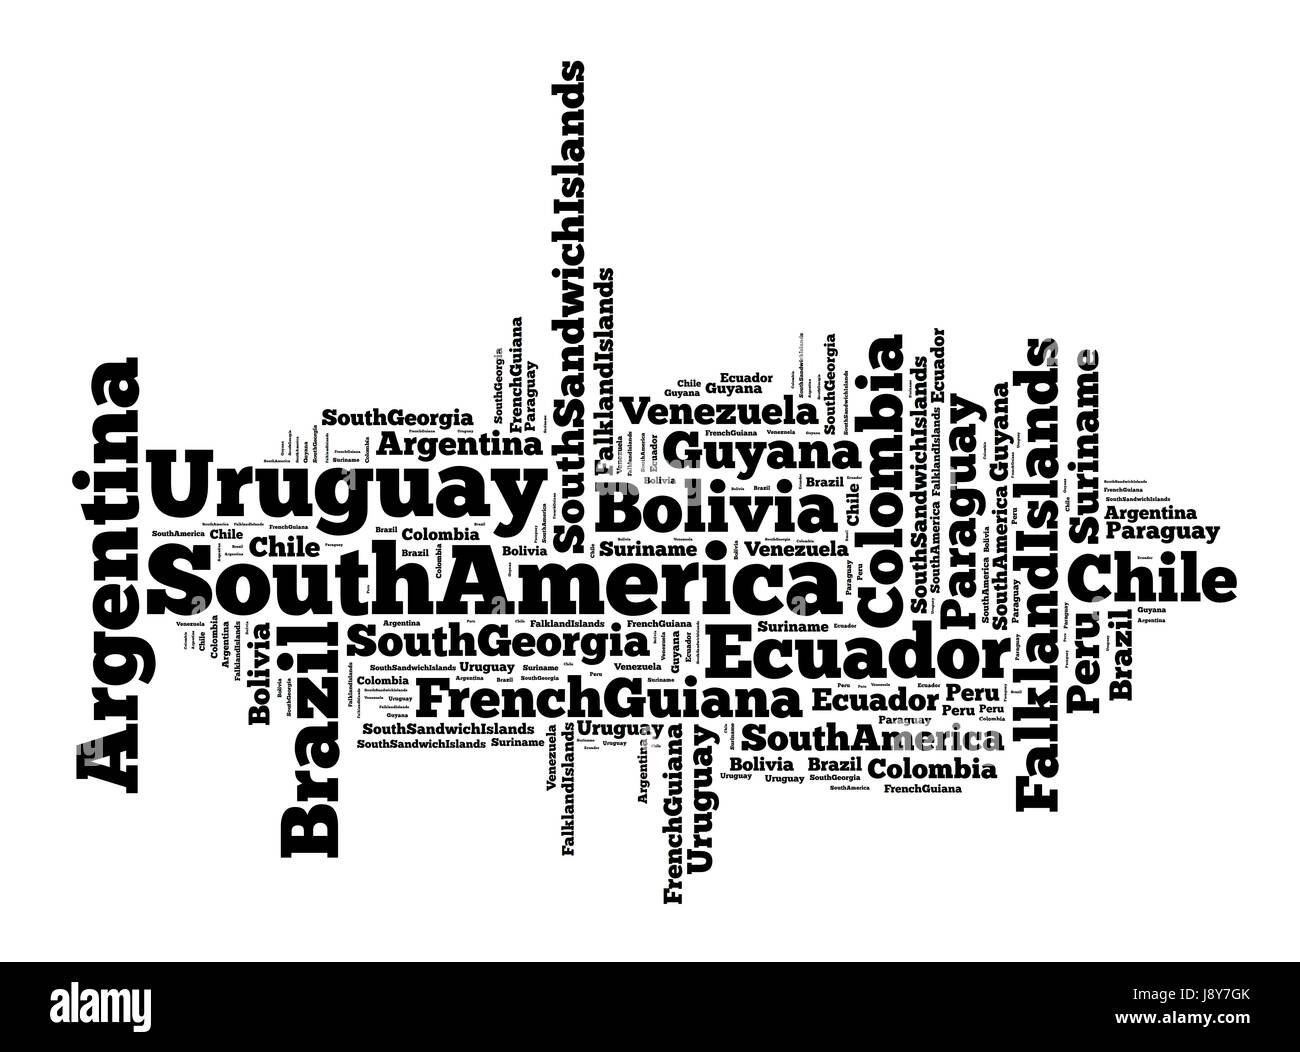 Word cloud of South American countries - Stock Image